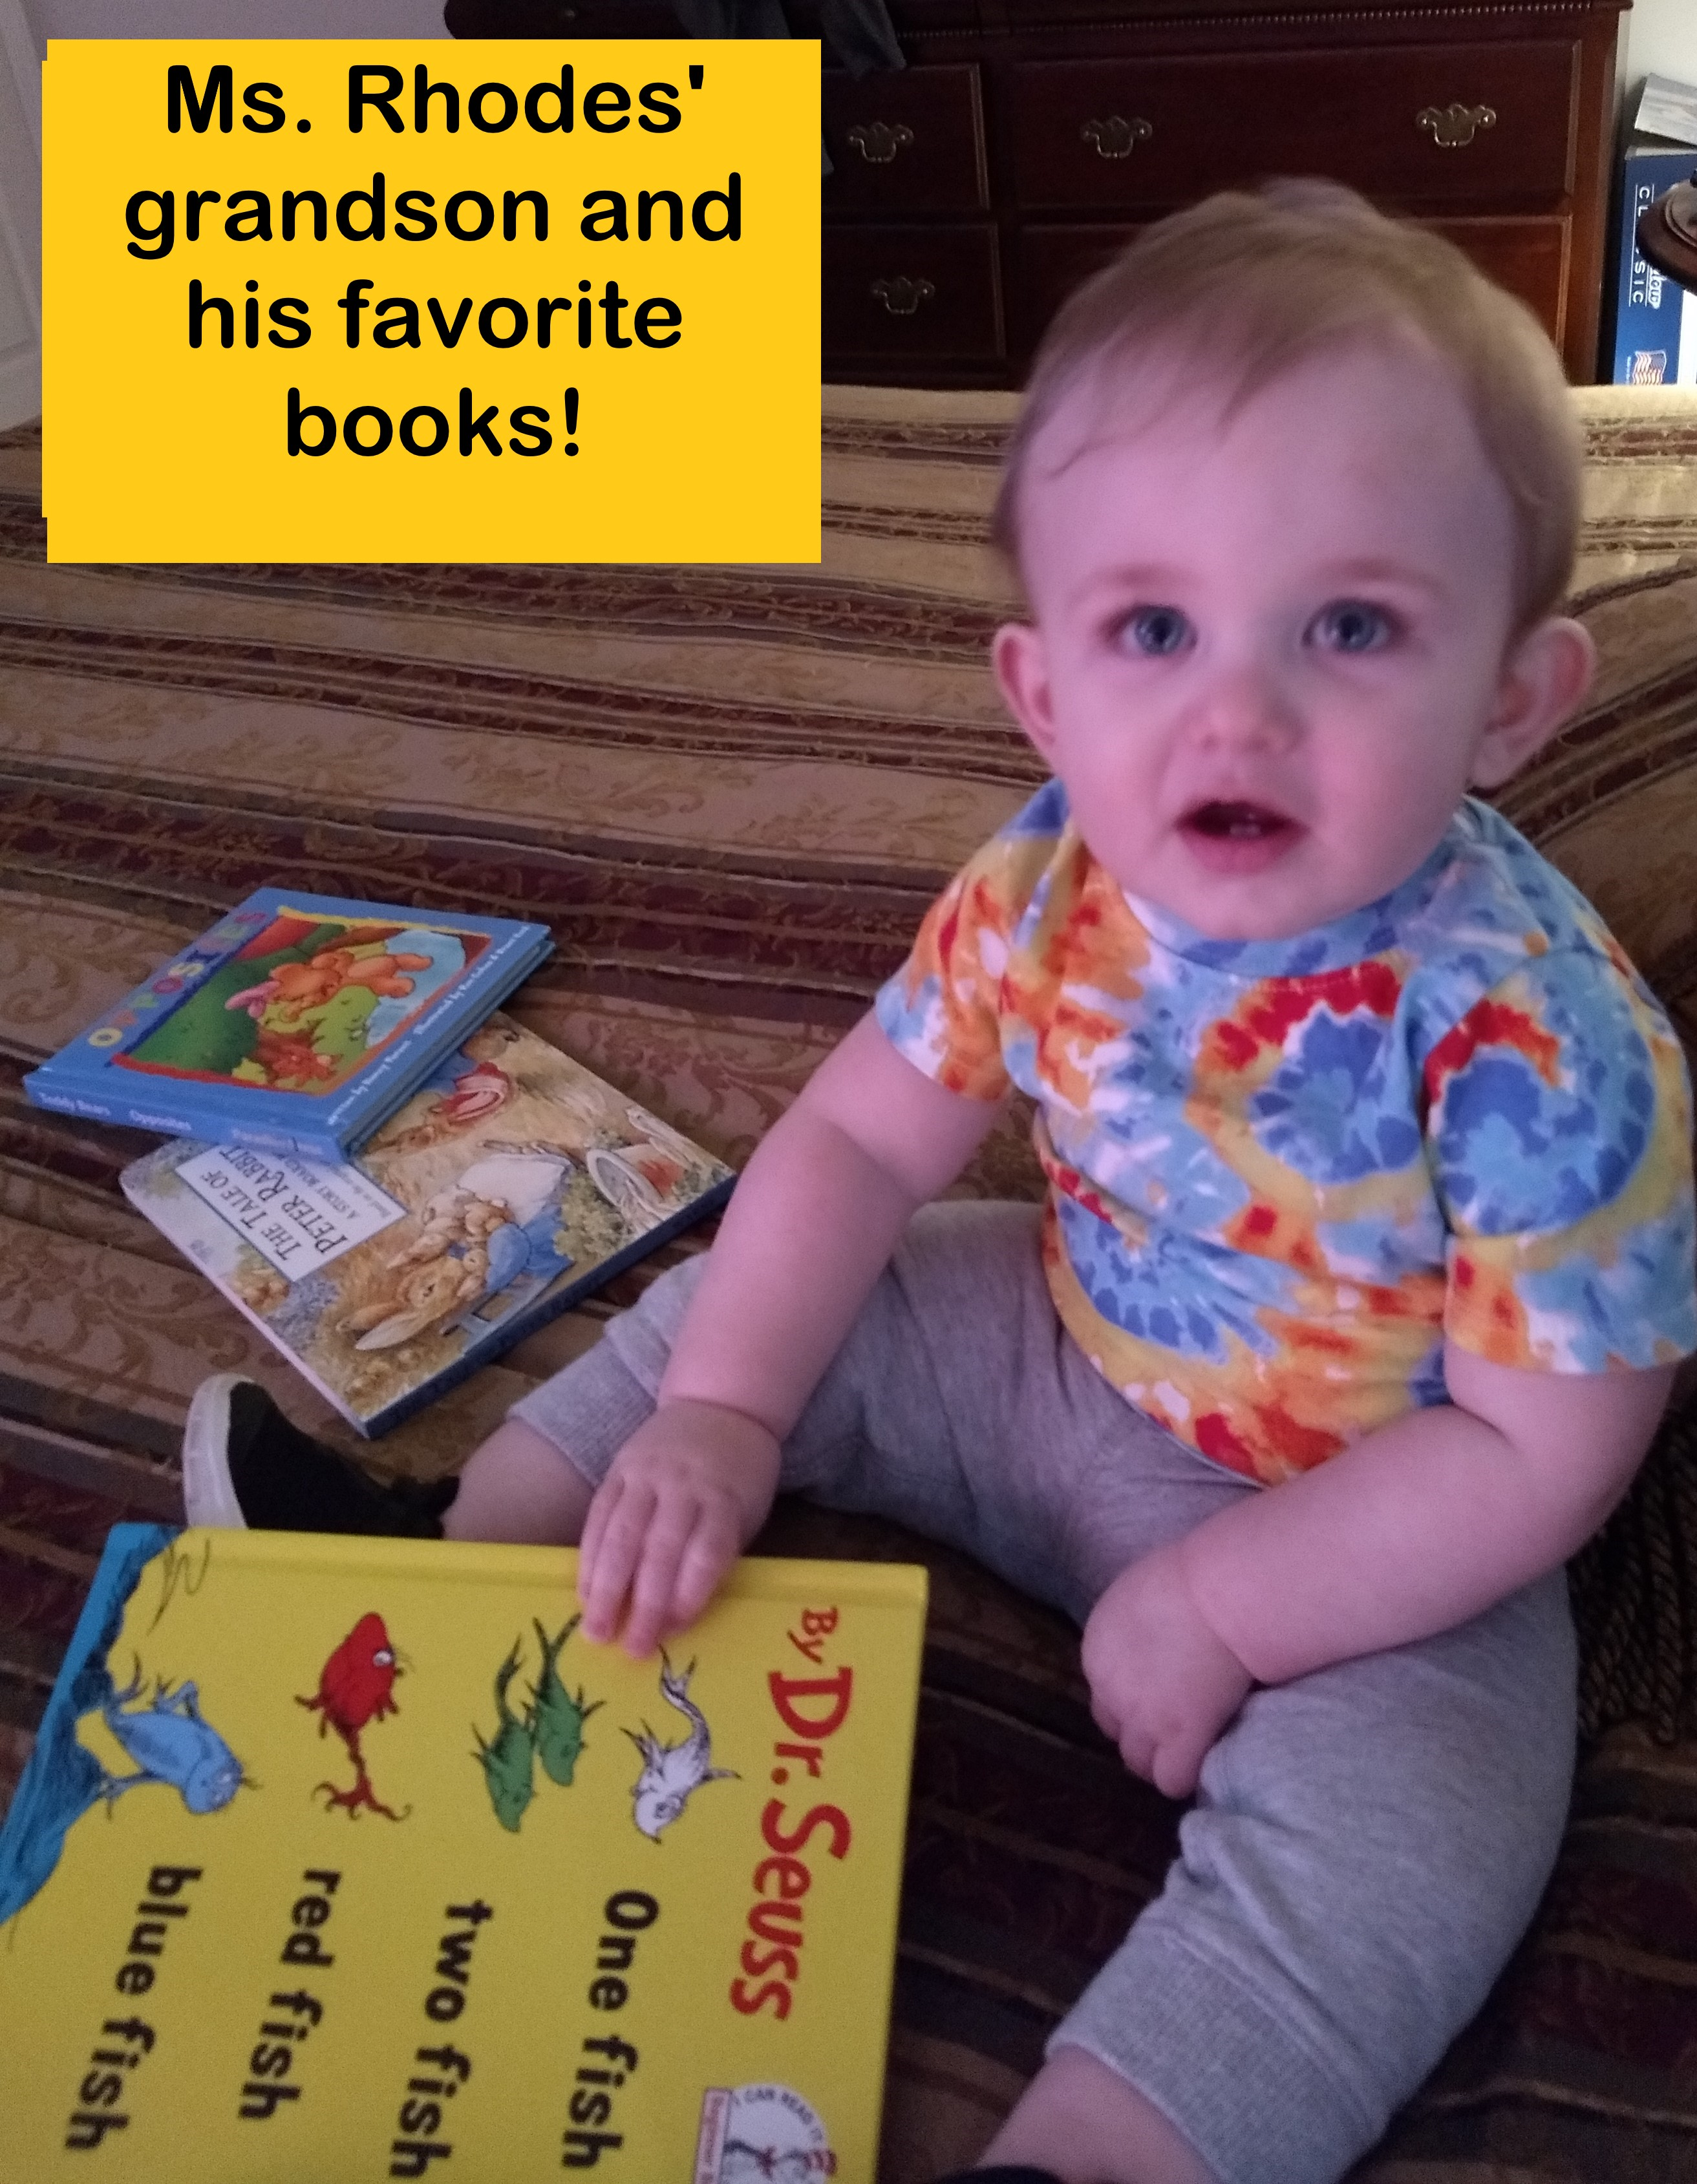 Ms. Rhodes' grandson and his favorite books!